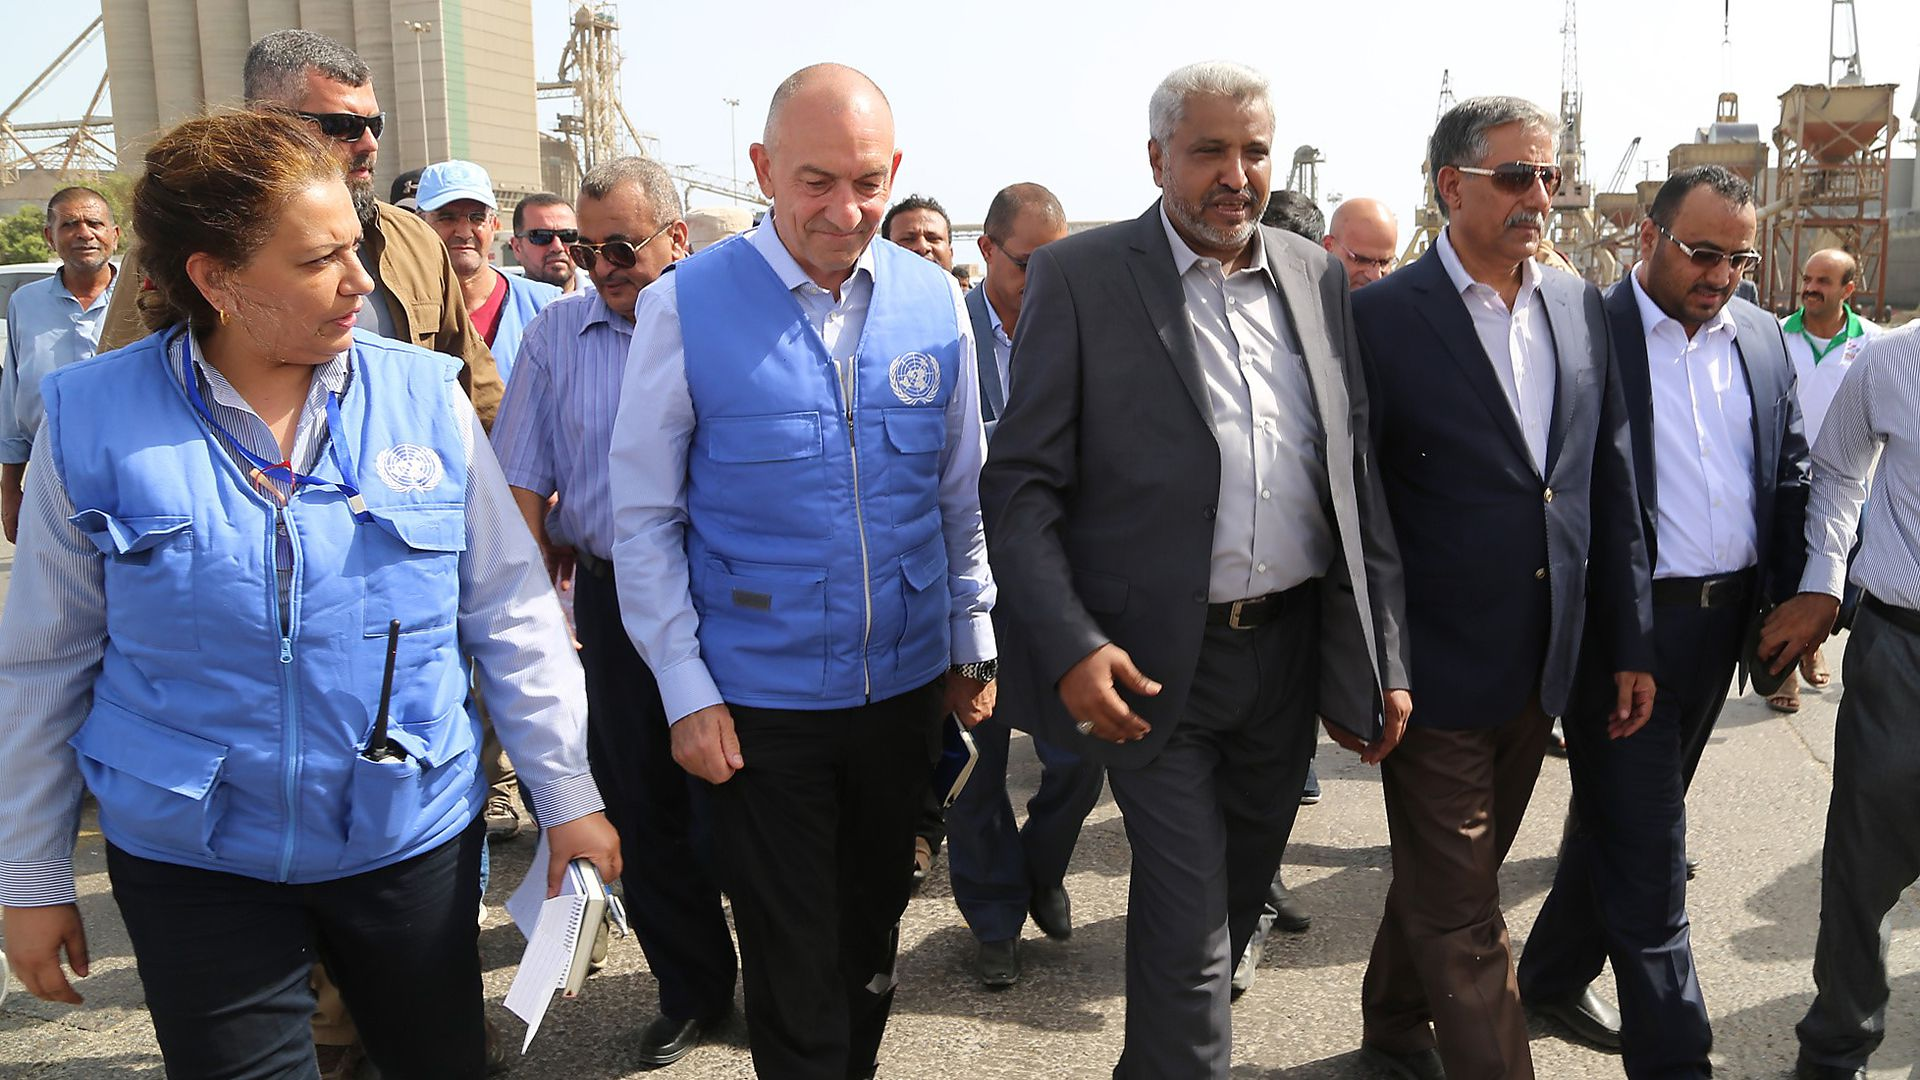 UN peacekeepers and acting governor of Hodeidah walking near port